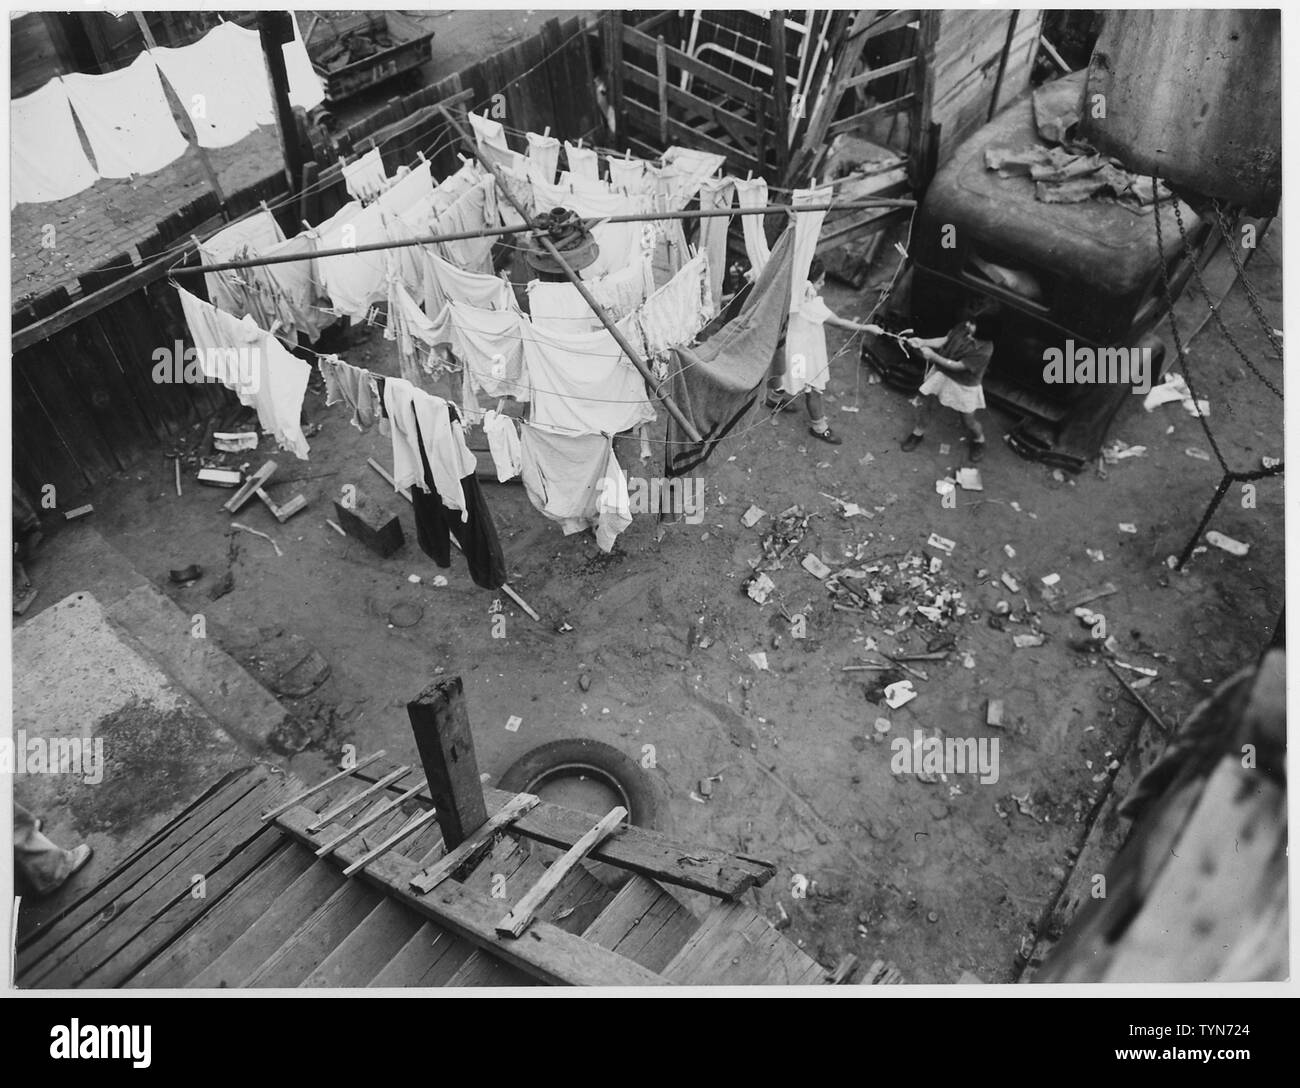 US Housing Authority: Los Angeles, California Site of Pico Gardens Cal 4-2: the before photo - Stock Image